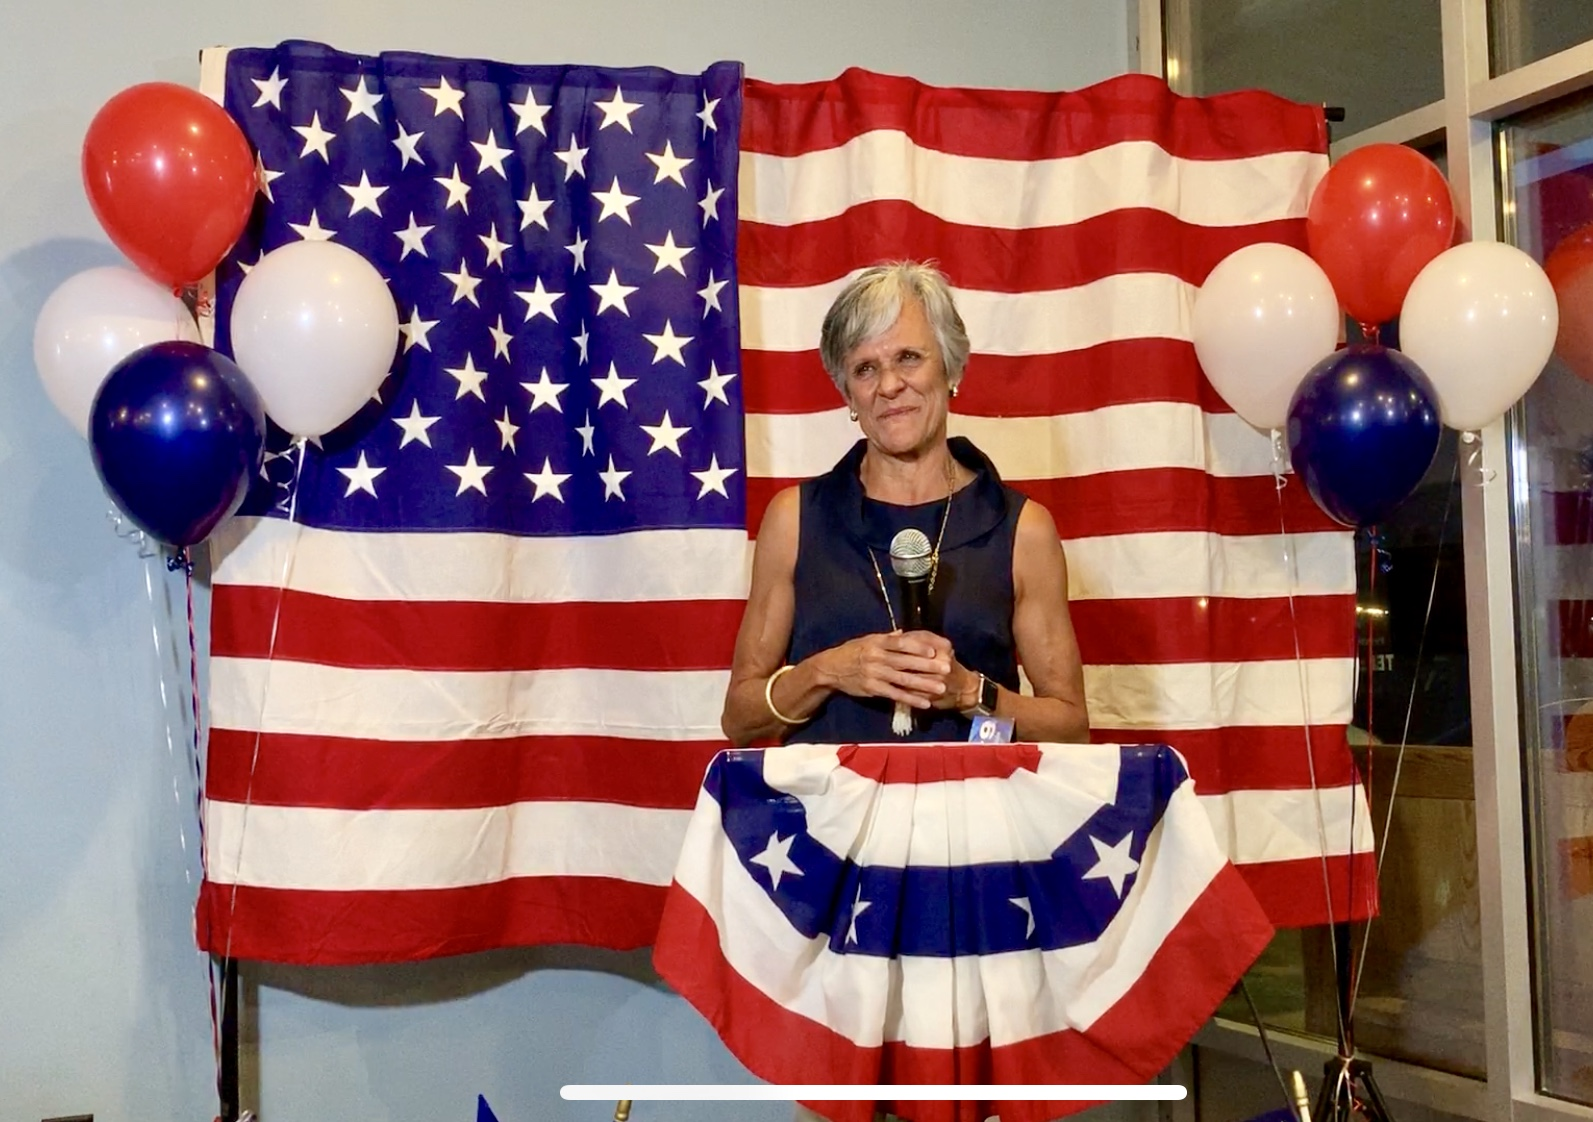 Dr. Joan Perry speaks to supporters after learning the results of the election .Photo by Catherine Hardee / Neuse News